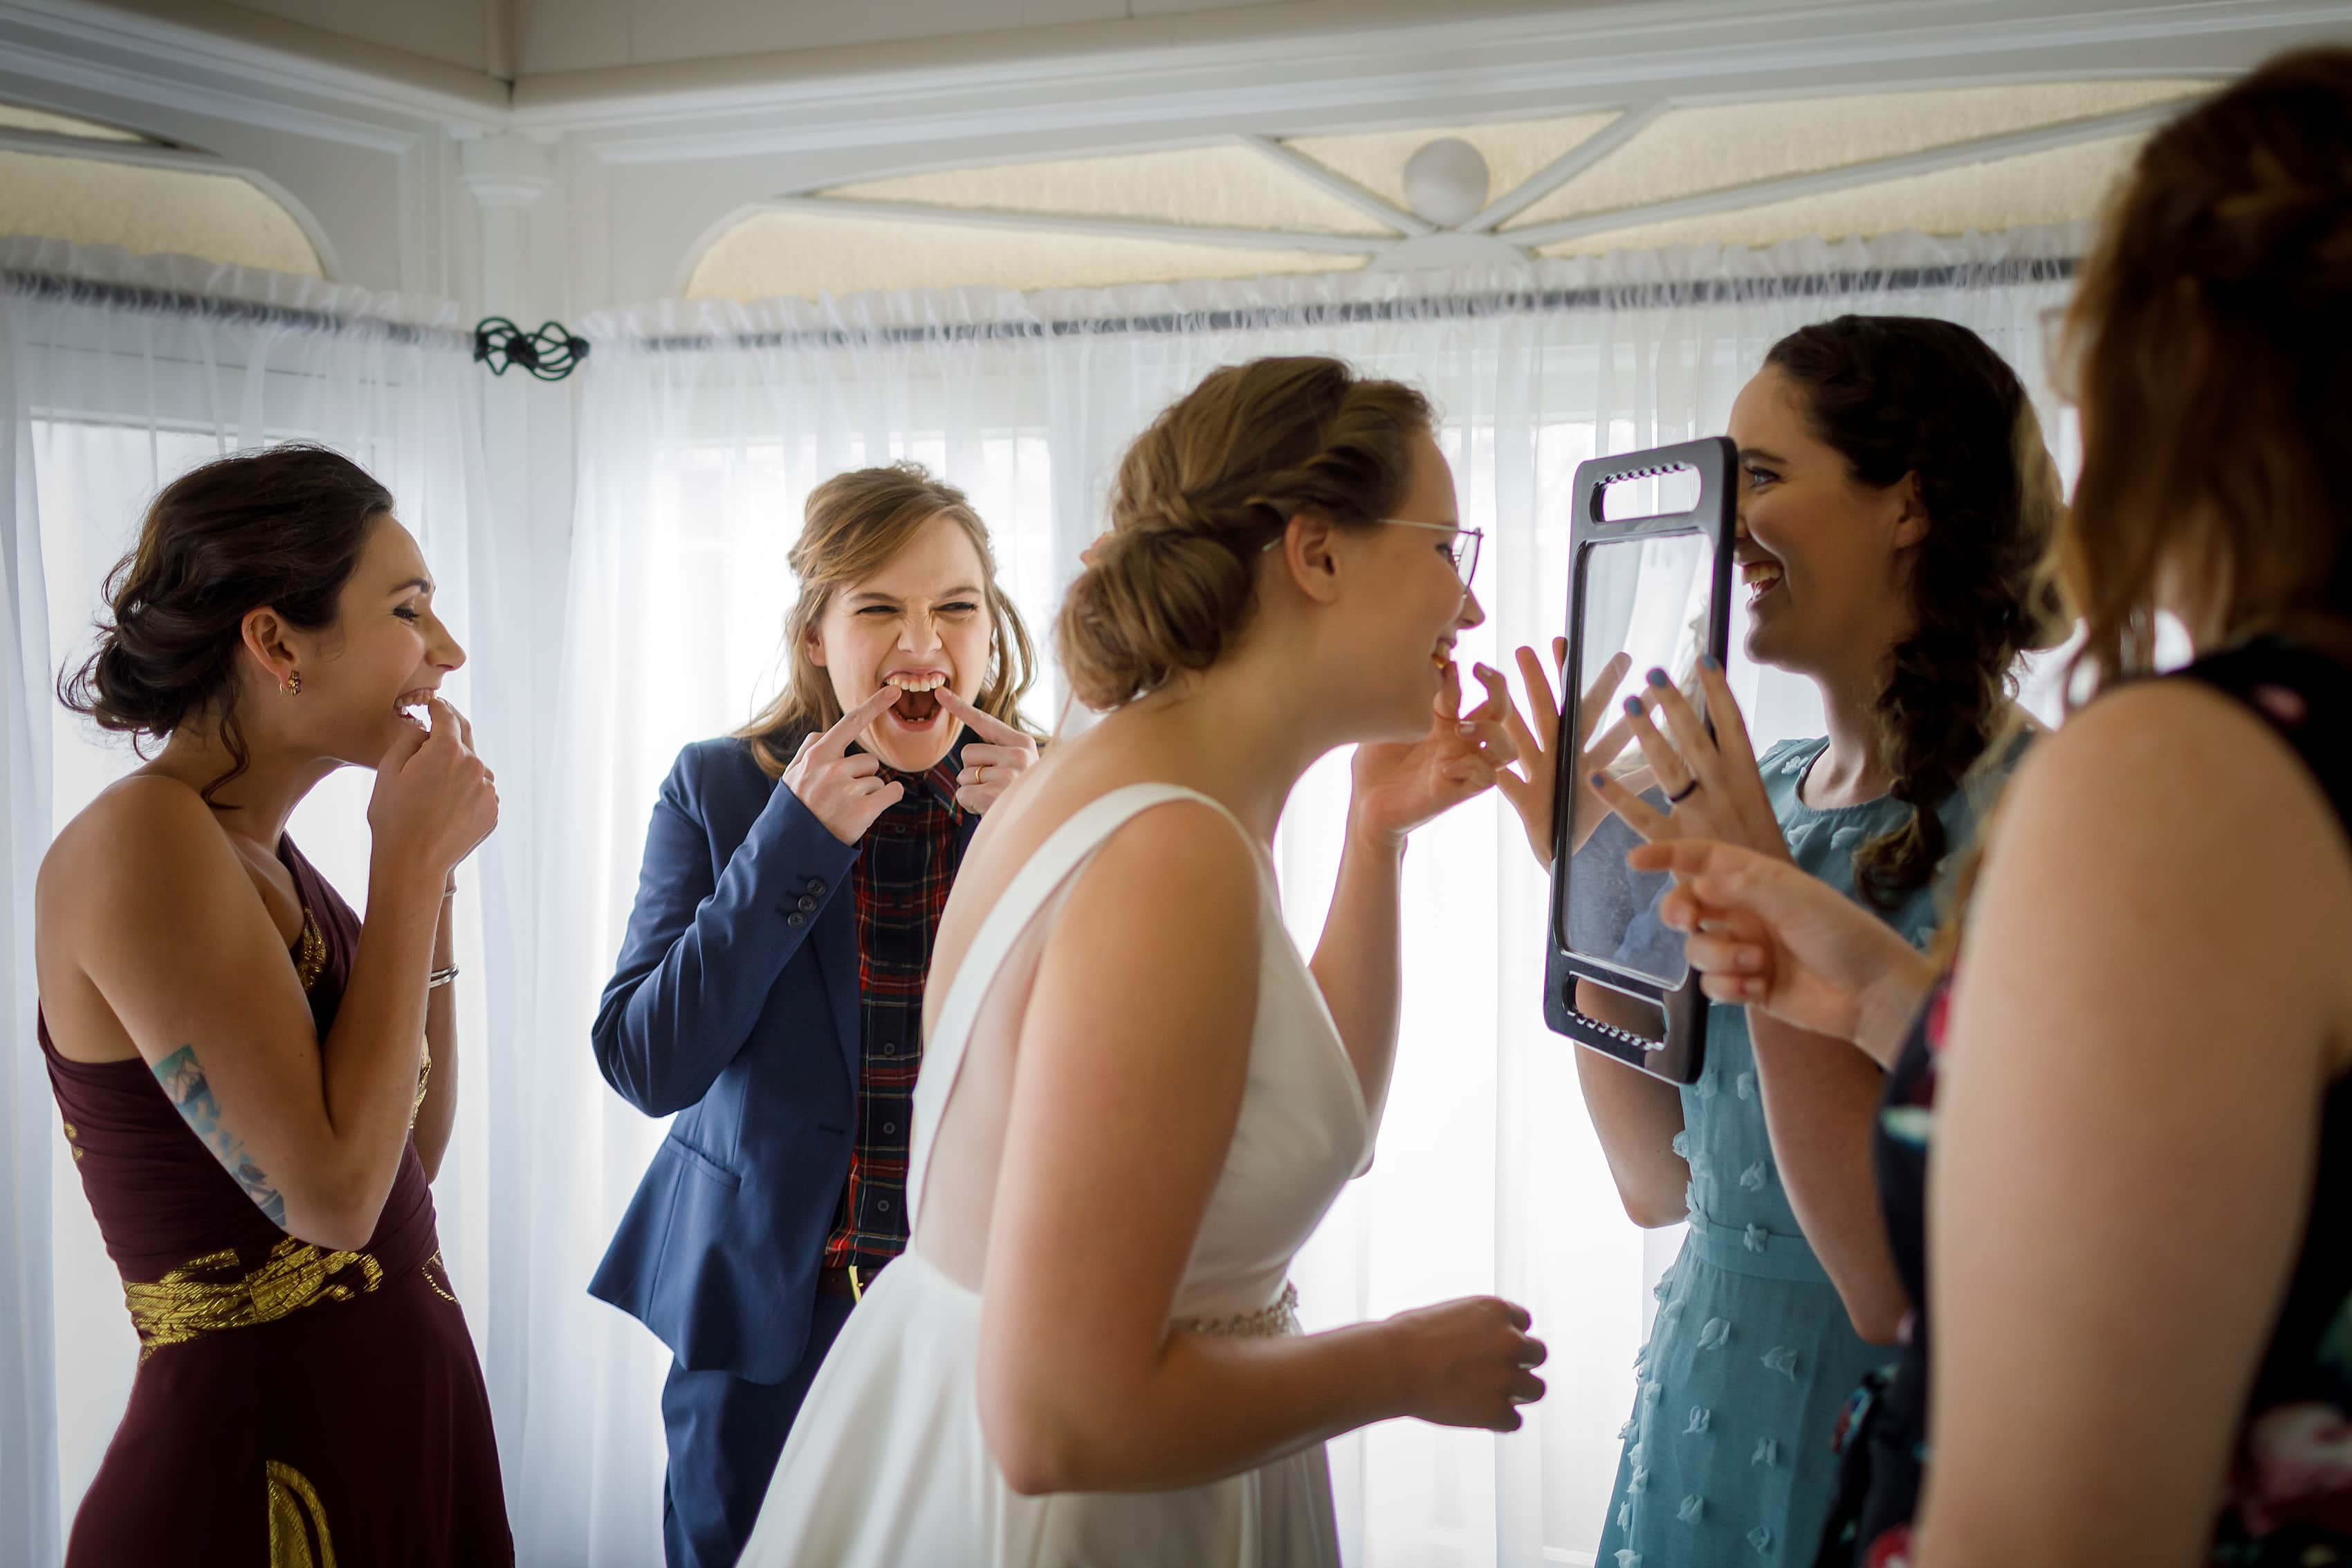 bridemaids help bride get the lipstick off her teeth while getting ready for wedding